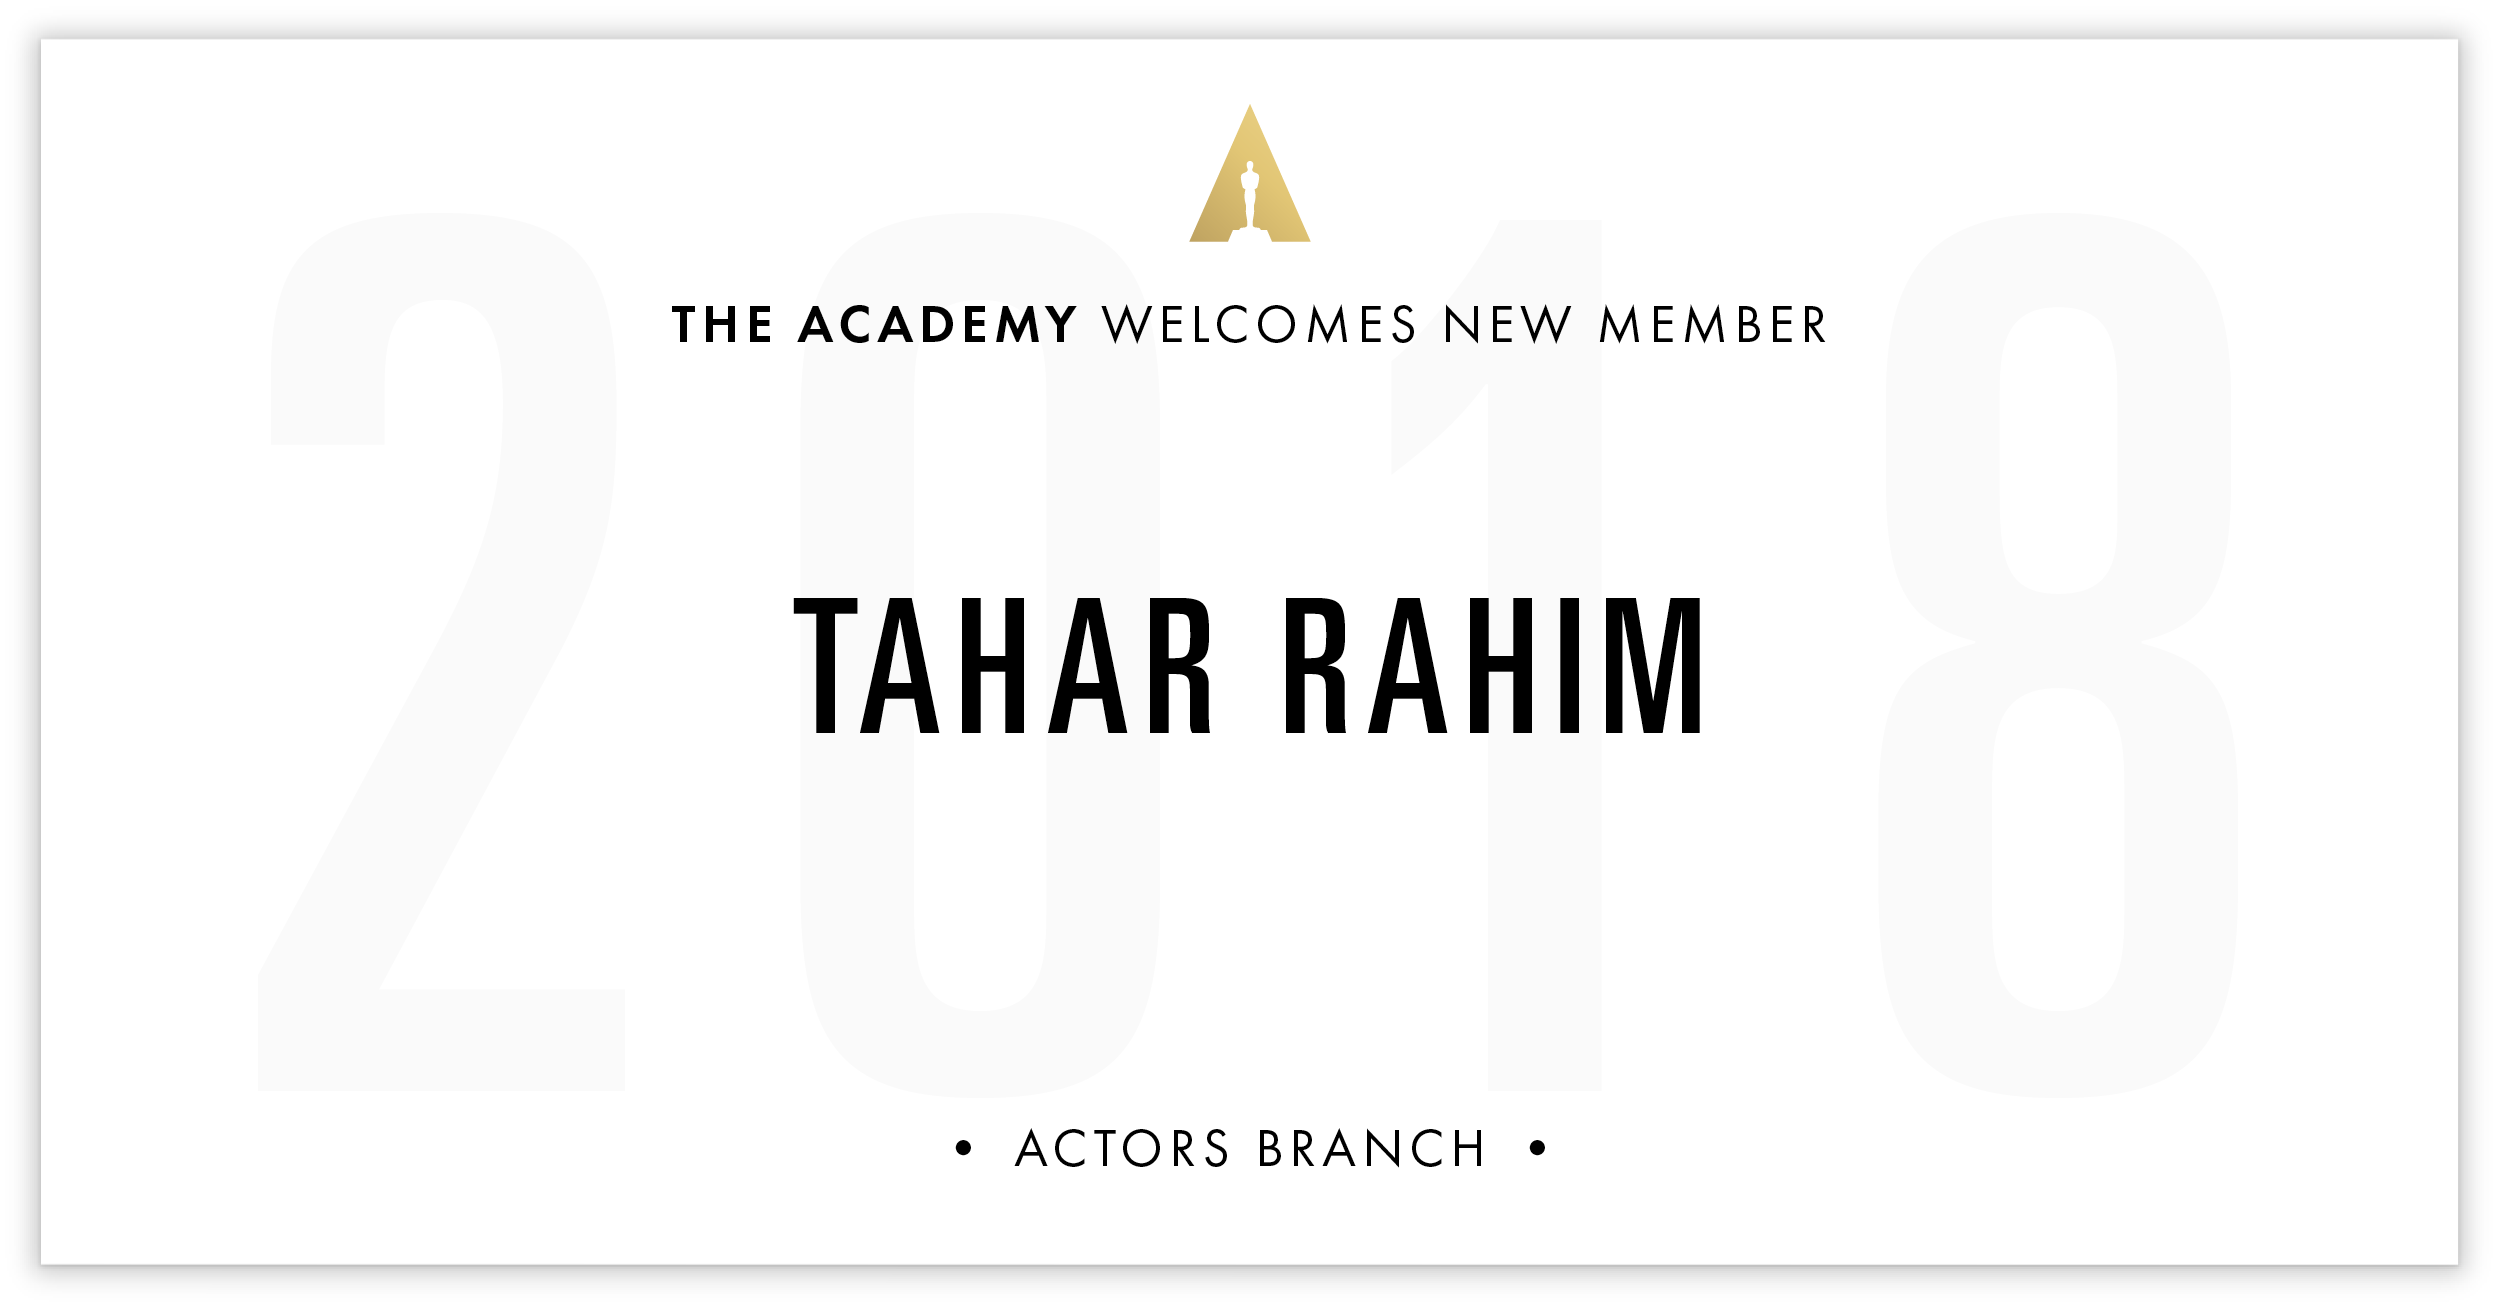 Tahar Rahim is invited!